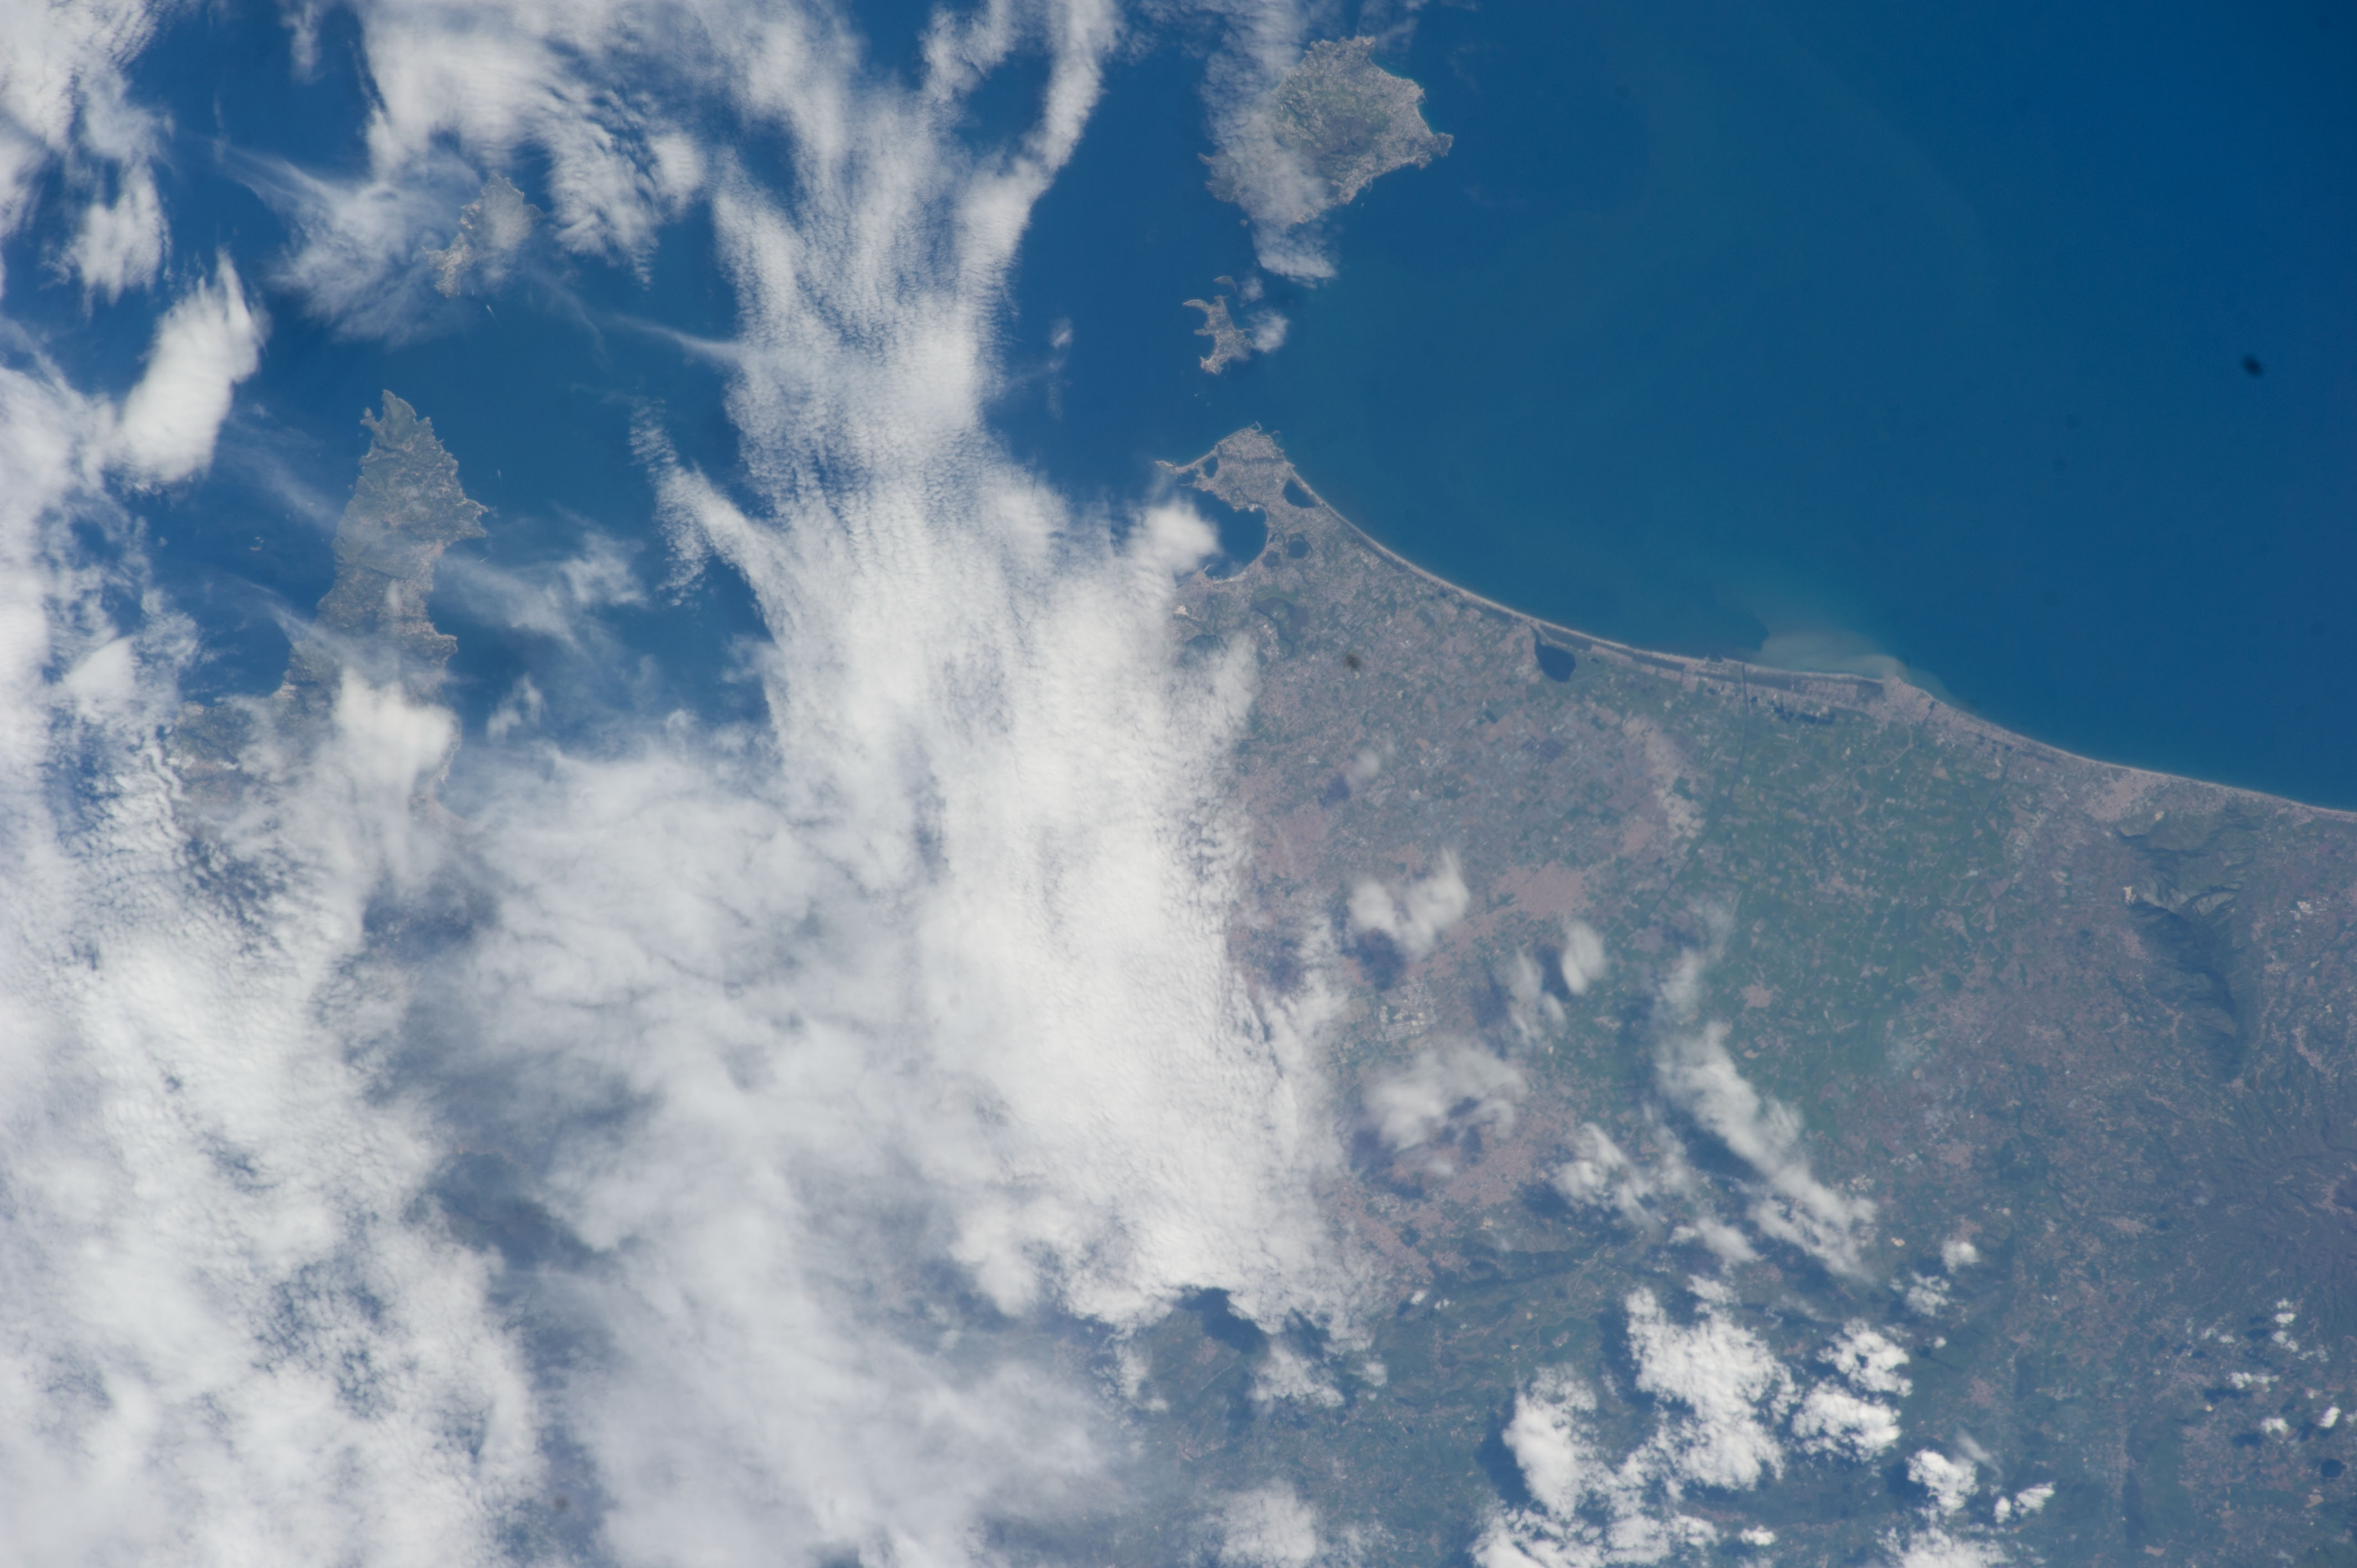 ISS039-E-013077